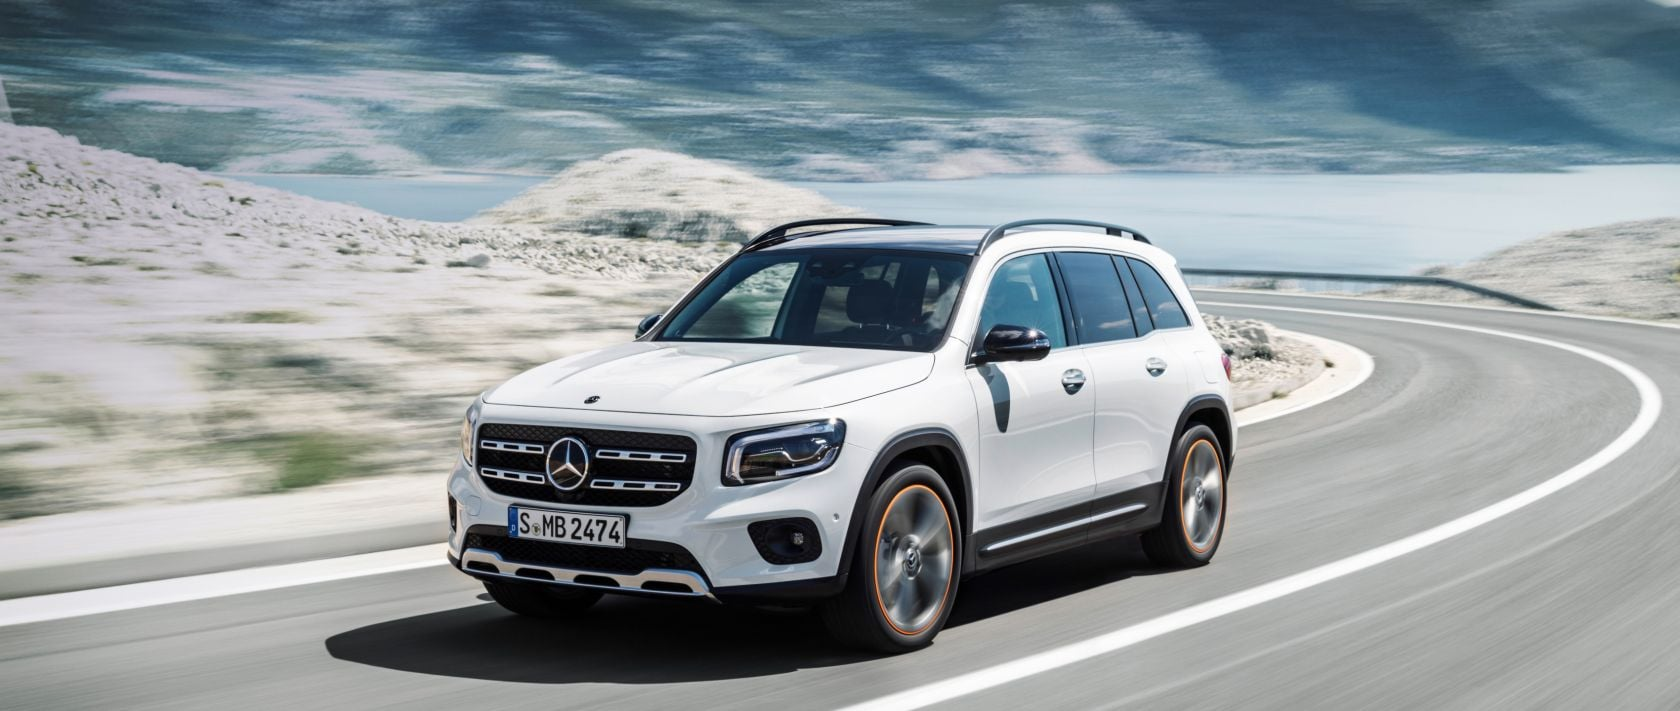 The new 2020 Mercedes-Benz GLB (X 247) in polar white on a coastal road.